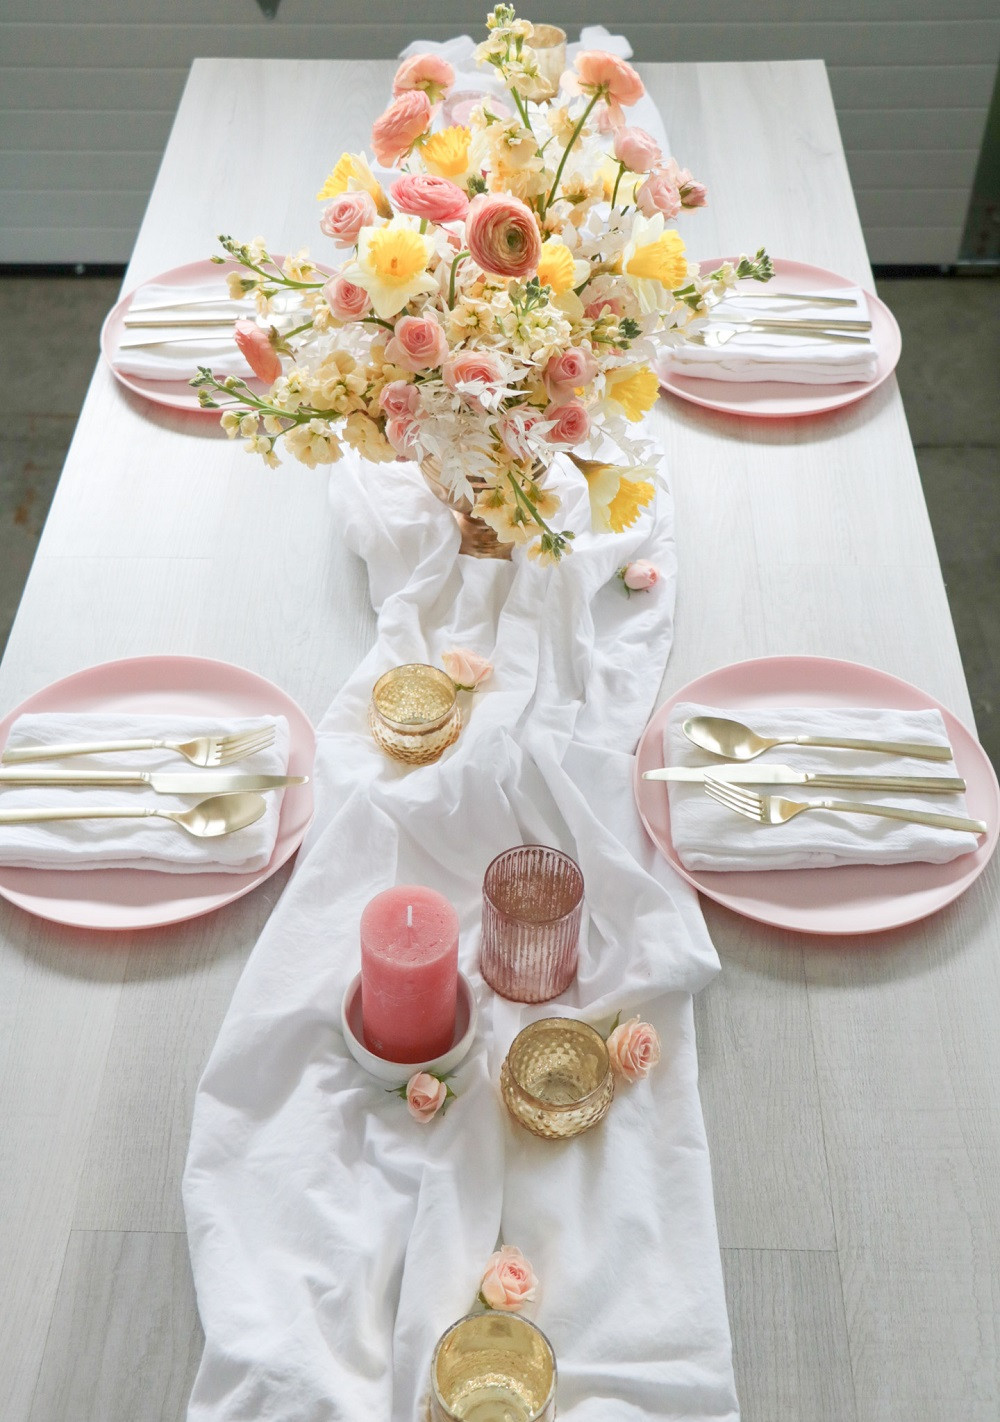 spring table centerpiece by Studio Bloom Iowa in peach, yellow, and cream